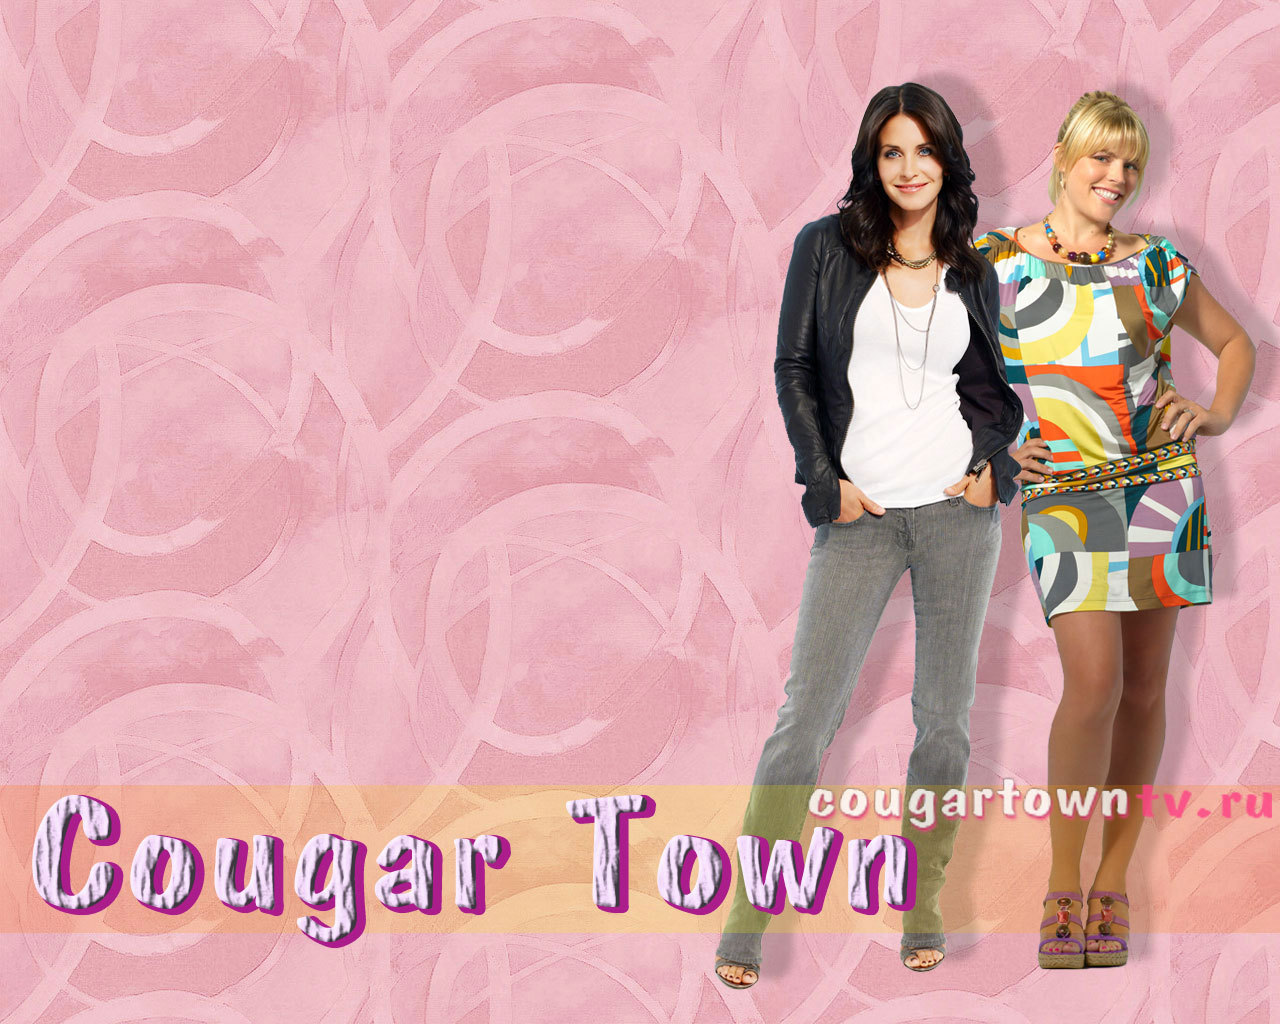 Cougar Town Wallpaper Cougar Town Wallpapers 2